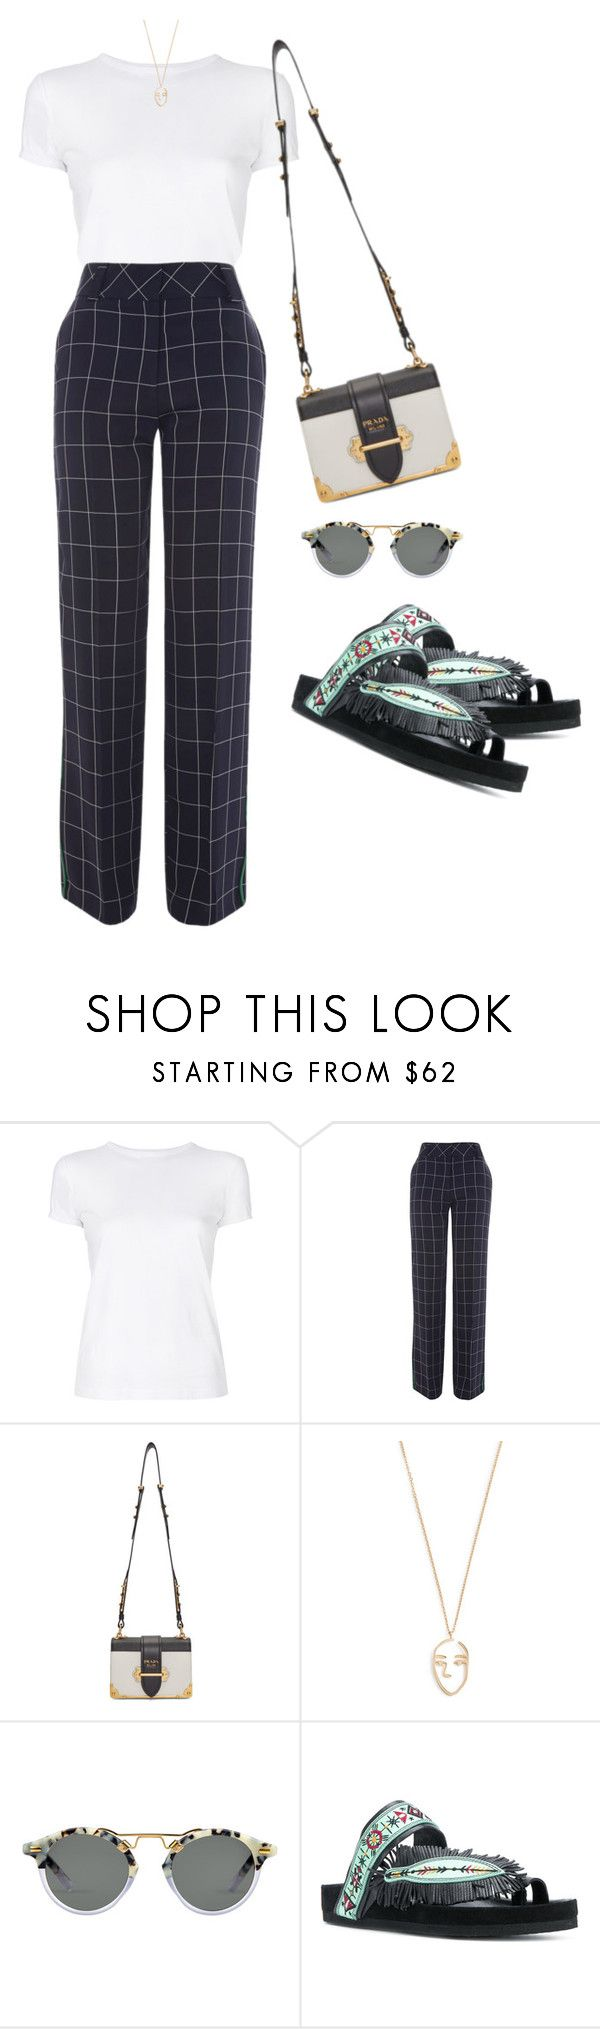 """Untitled #2552"" by shelleytrinder ❤ liked on Polyvore featuring Helmut Lang, Topshop, Prada, Amber Sceats and Isabel Marant"